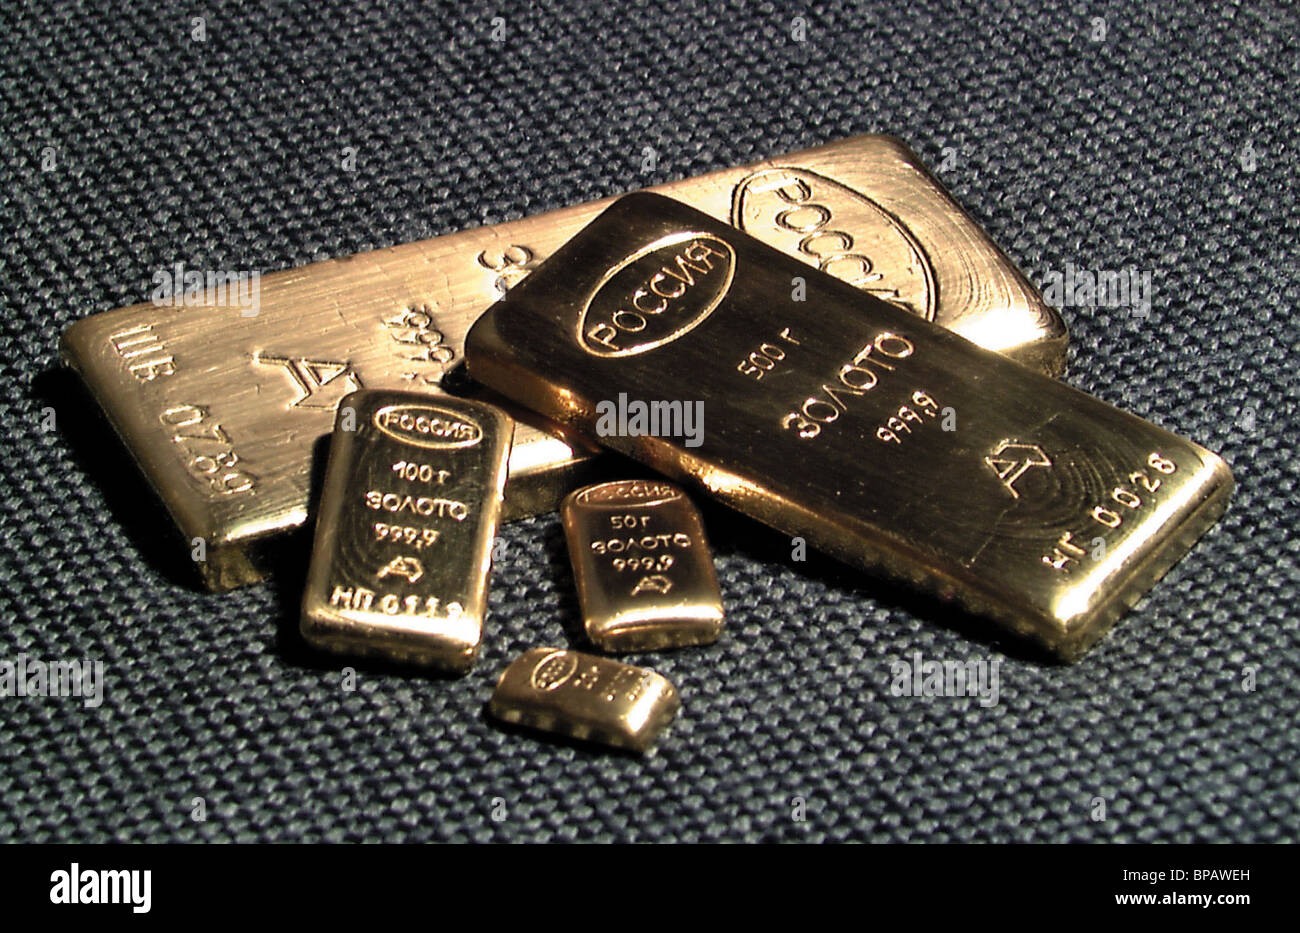 How to buy gold now - Russian People Now Can Buy Gold Ingots